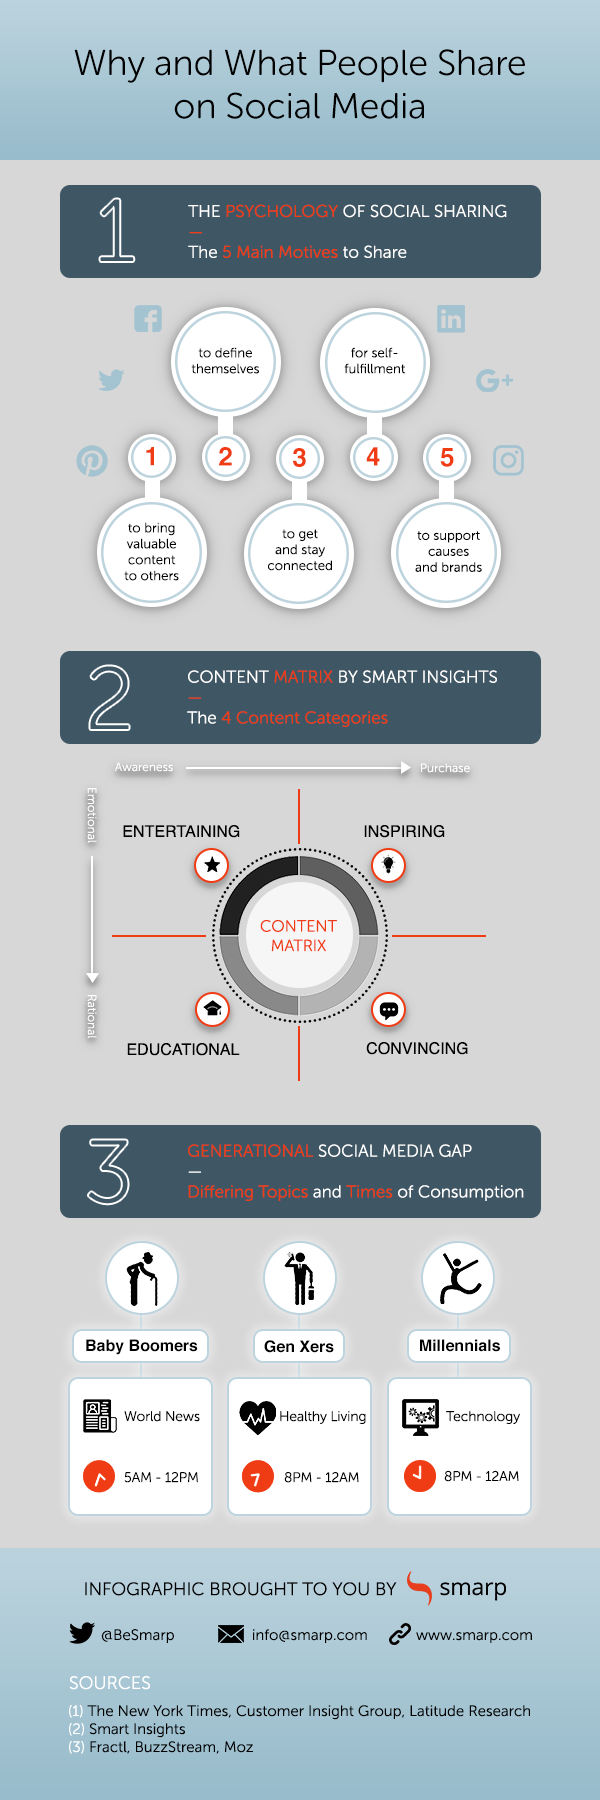 Why and what people share on social media infographic